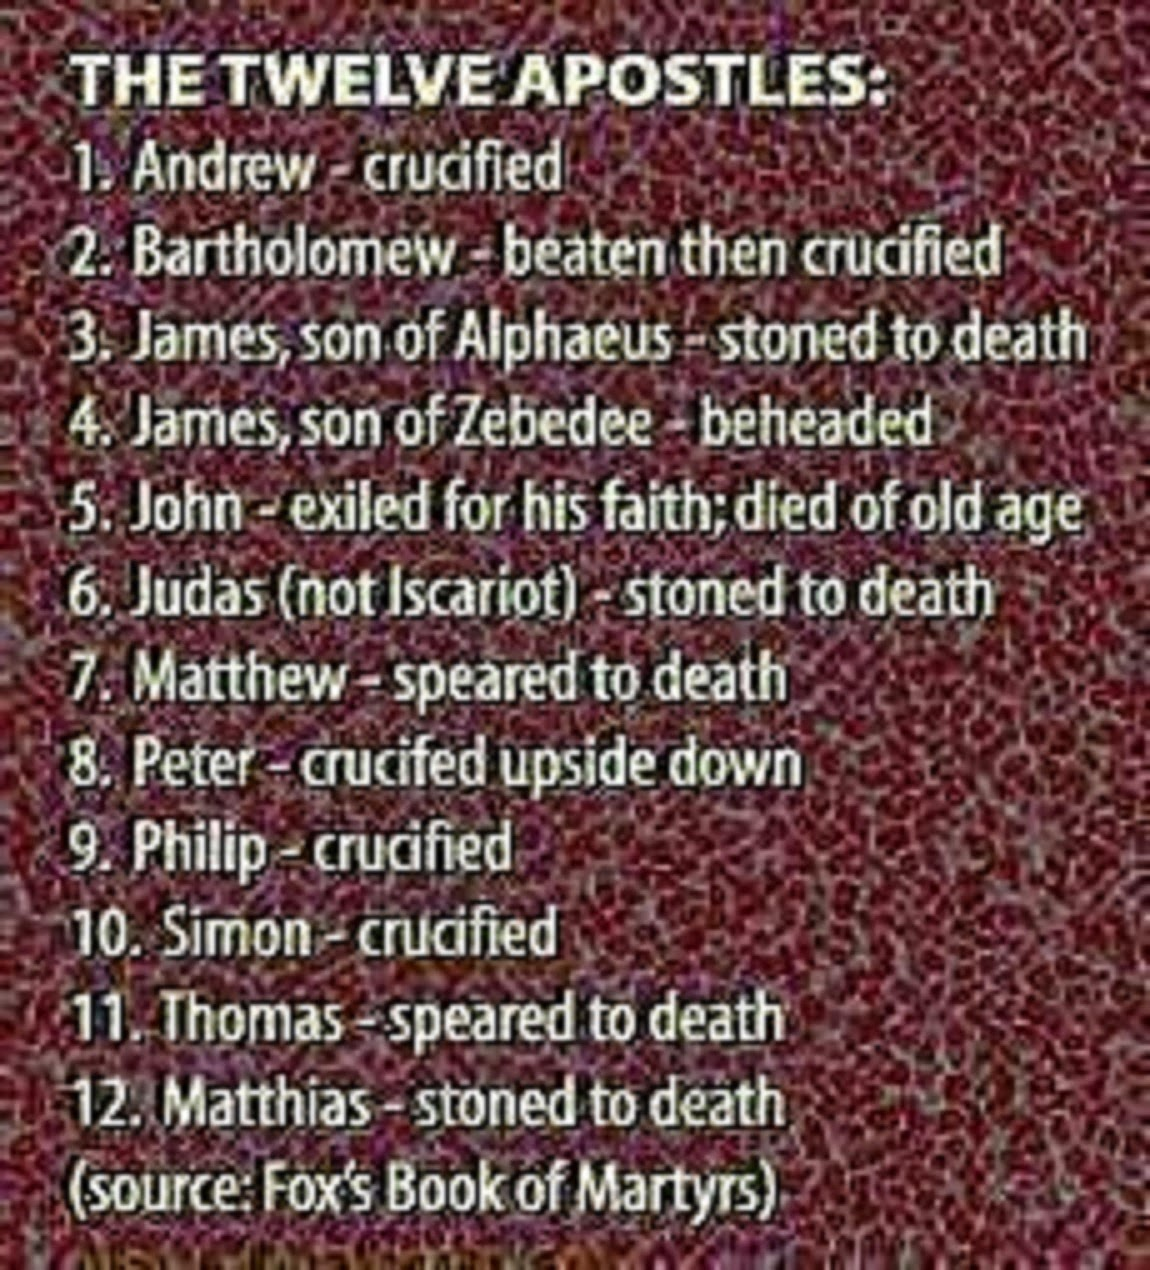 THE REAL ORIGINAL 12 APOSTLES AND THEIR DEATHS